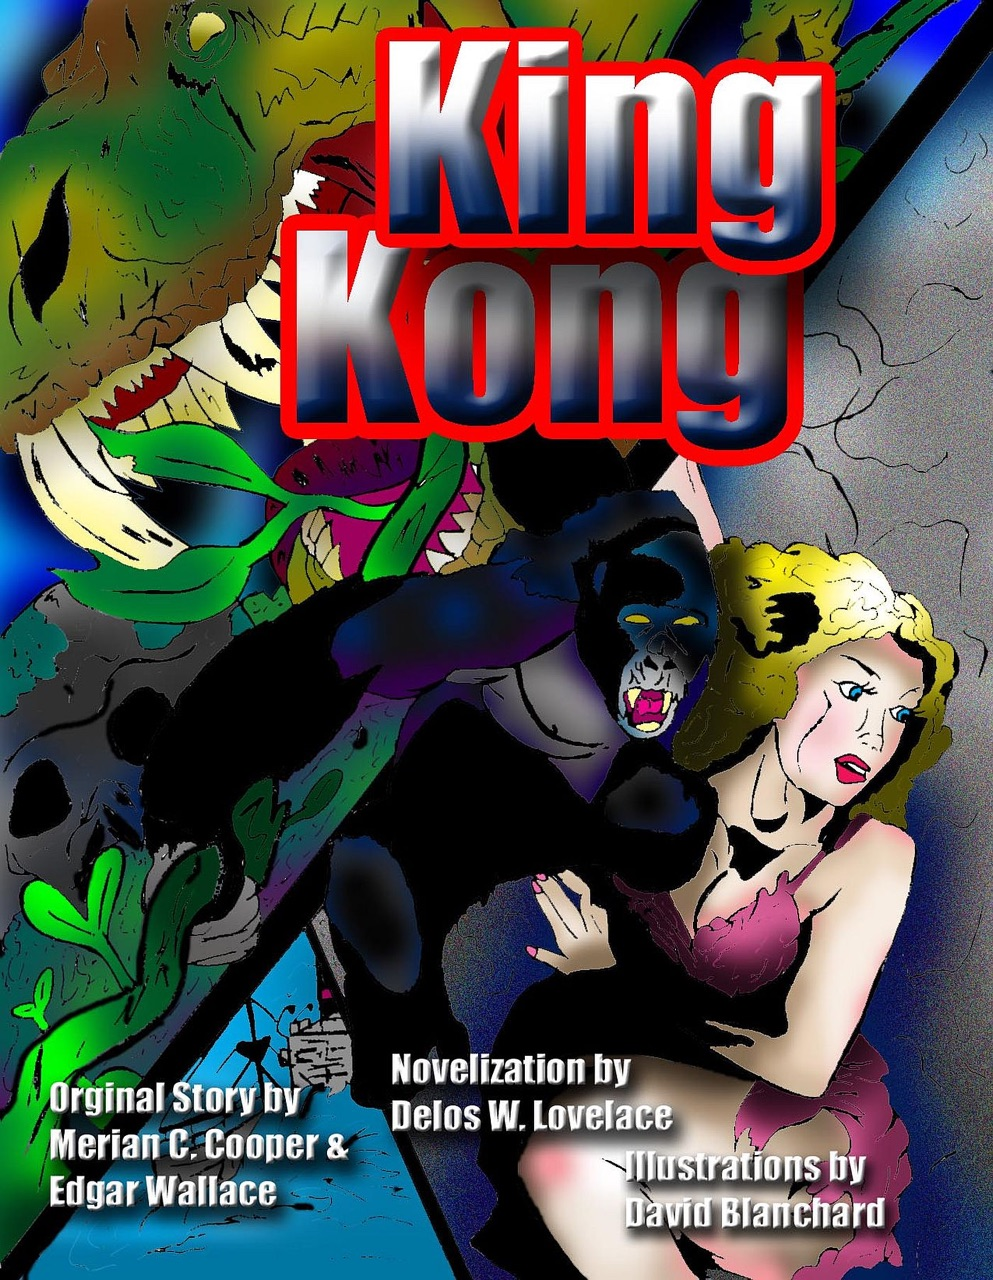 an examination of the book king kong by edgar wallace King kong [edgar and cooper, merian c wallace] one who was king and the god of the world he knew i had a comic book version of king kong.